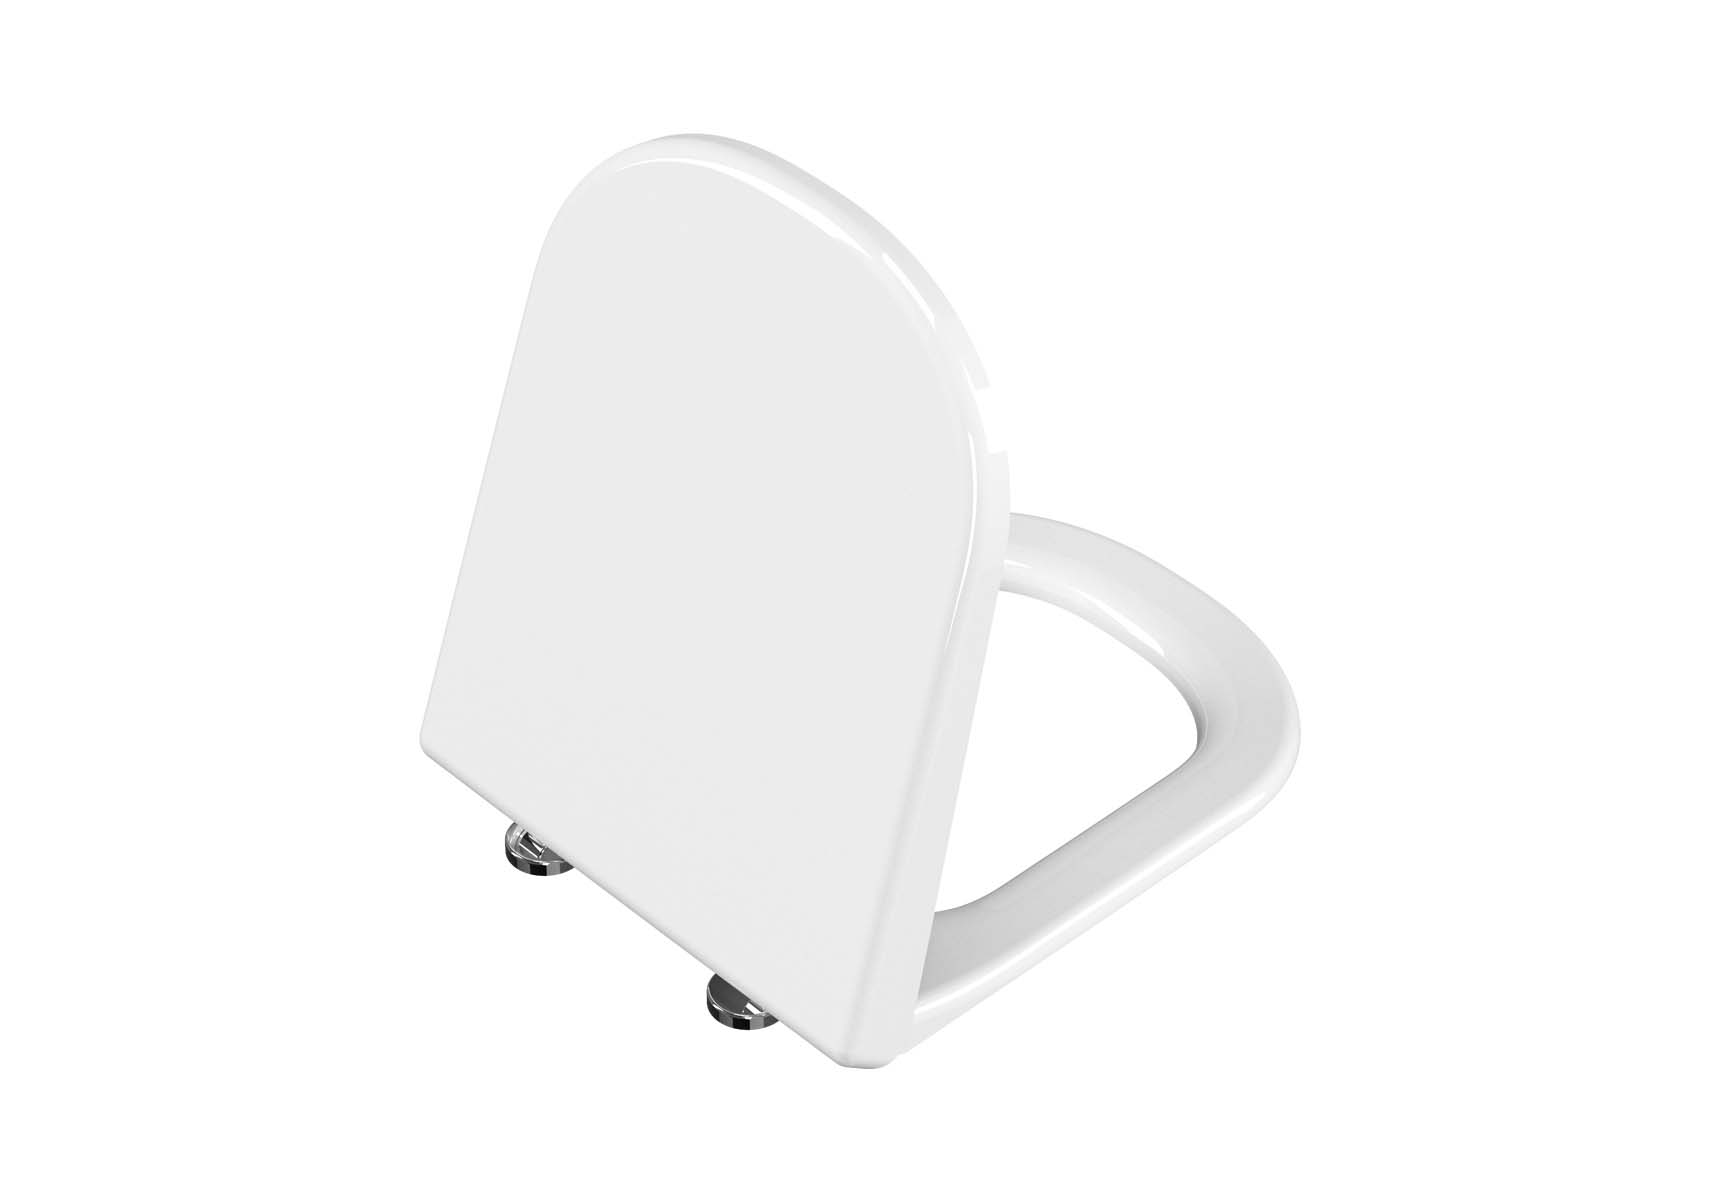 Universal WC Seat-Round Form, Soft Closing